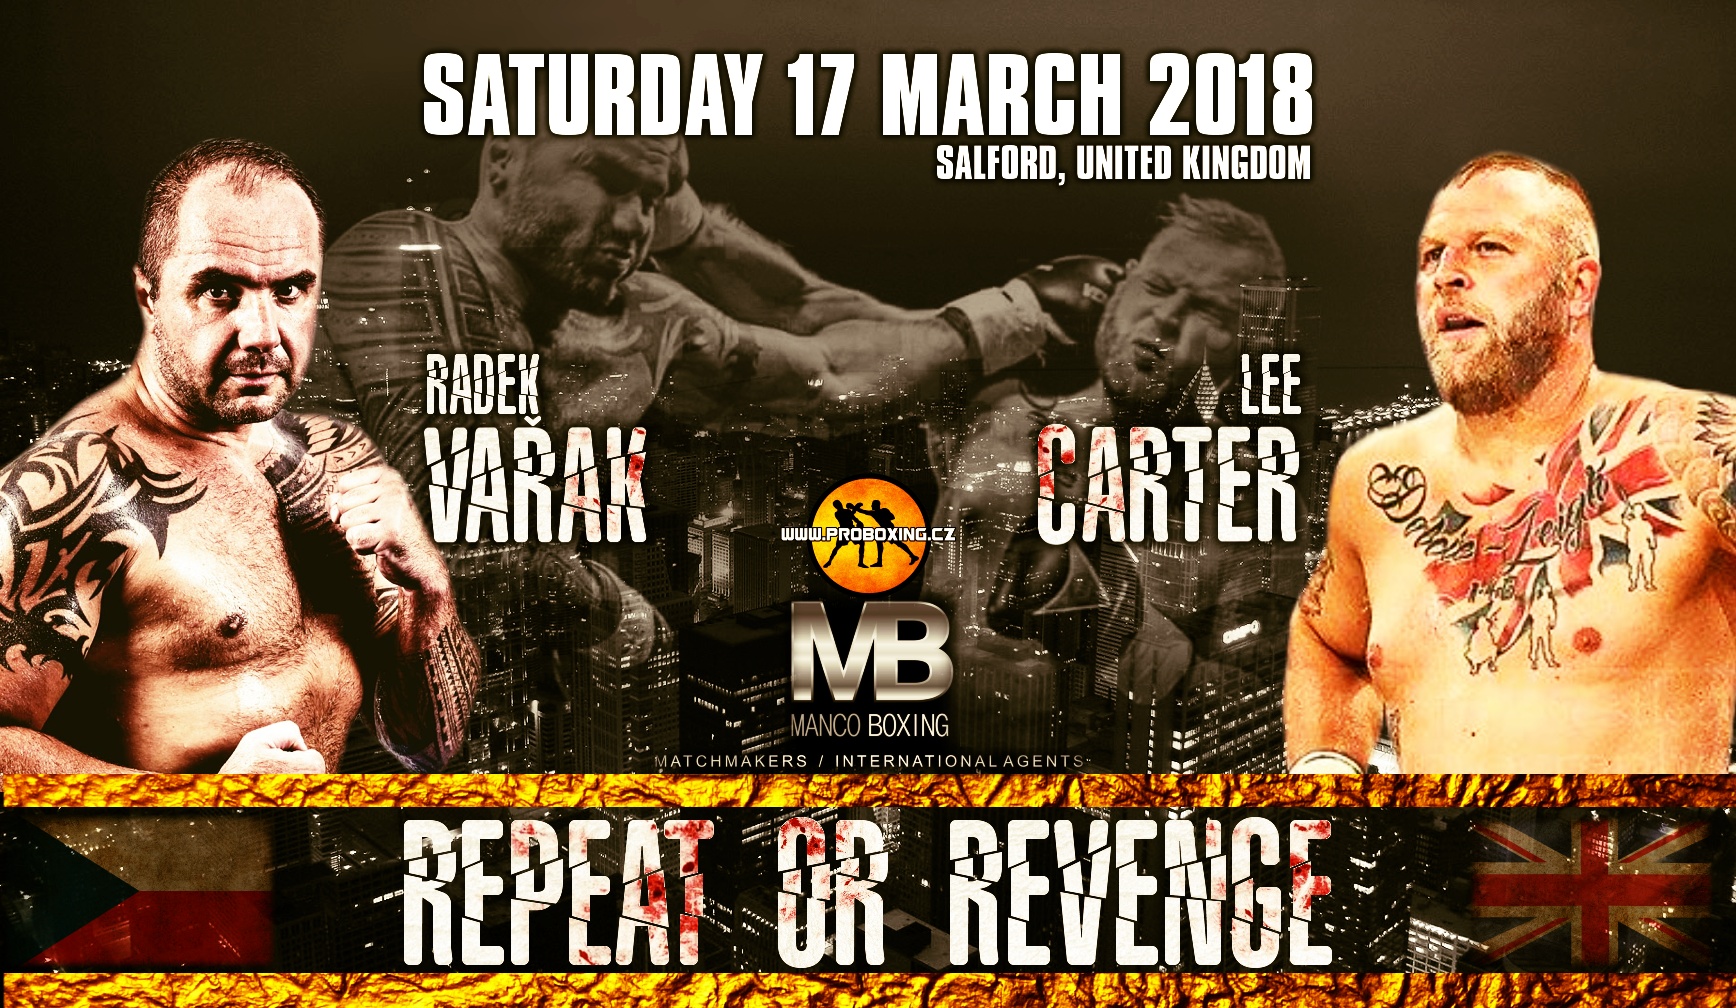 Radek Vařak vs Lee Carter 2